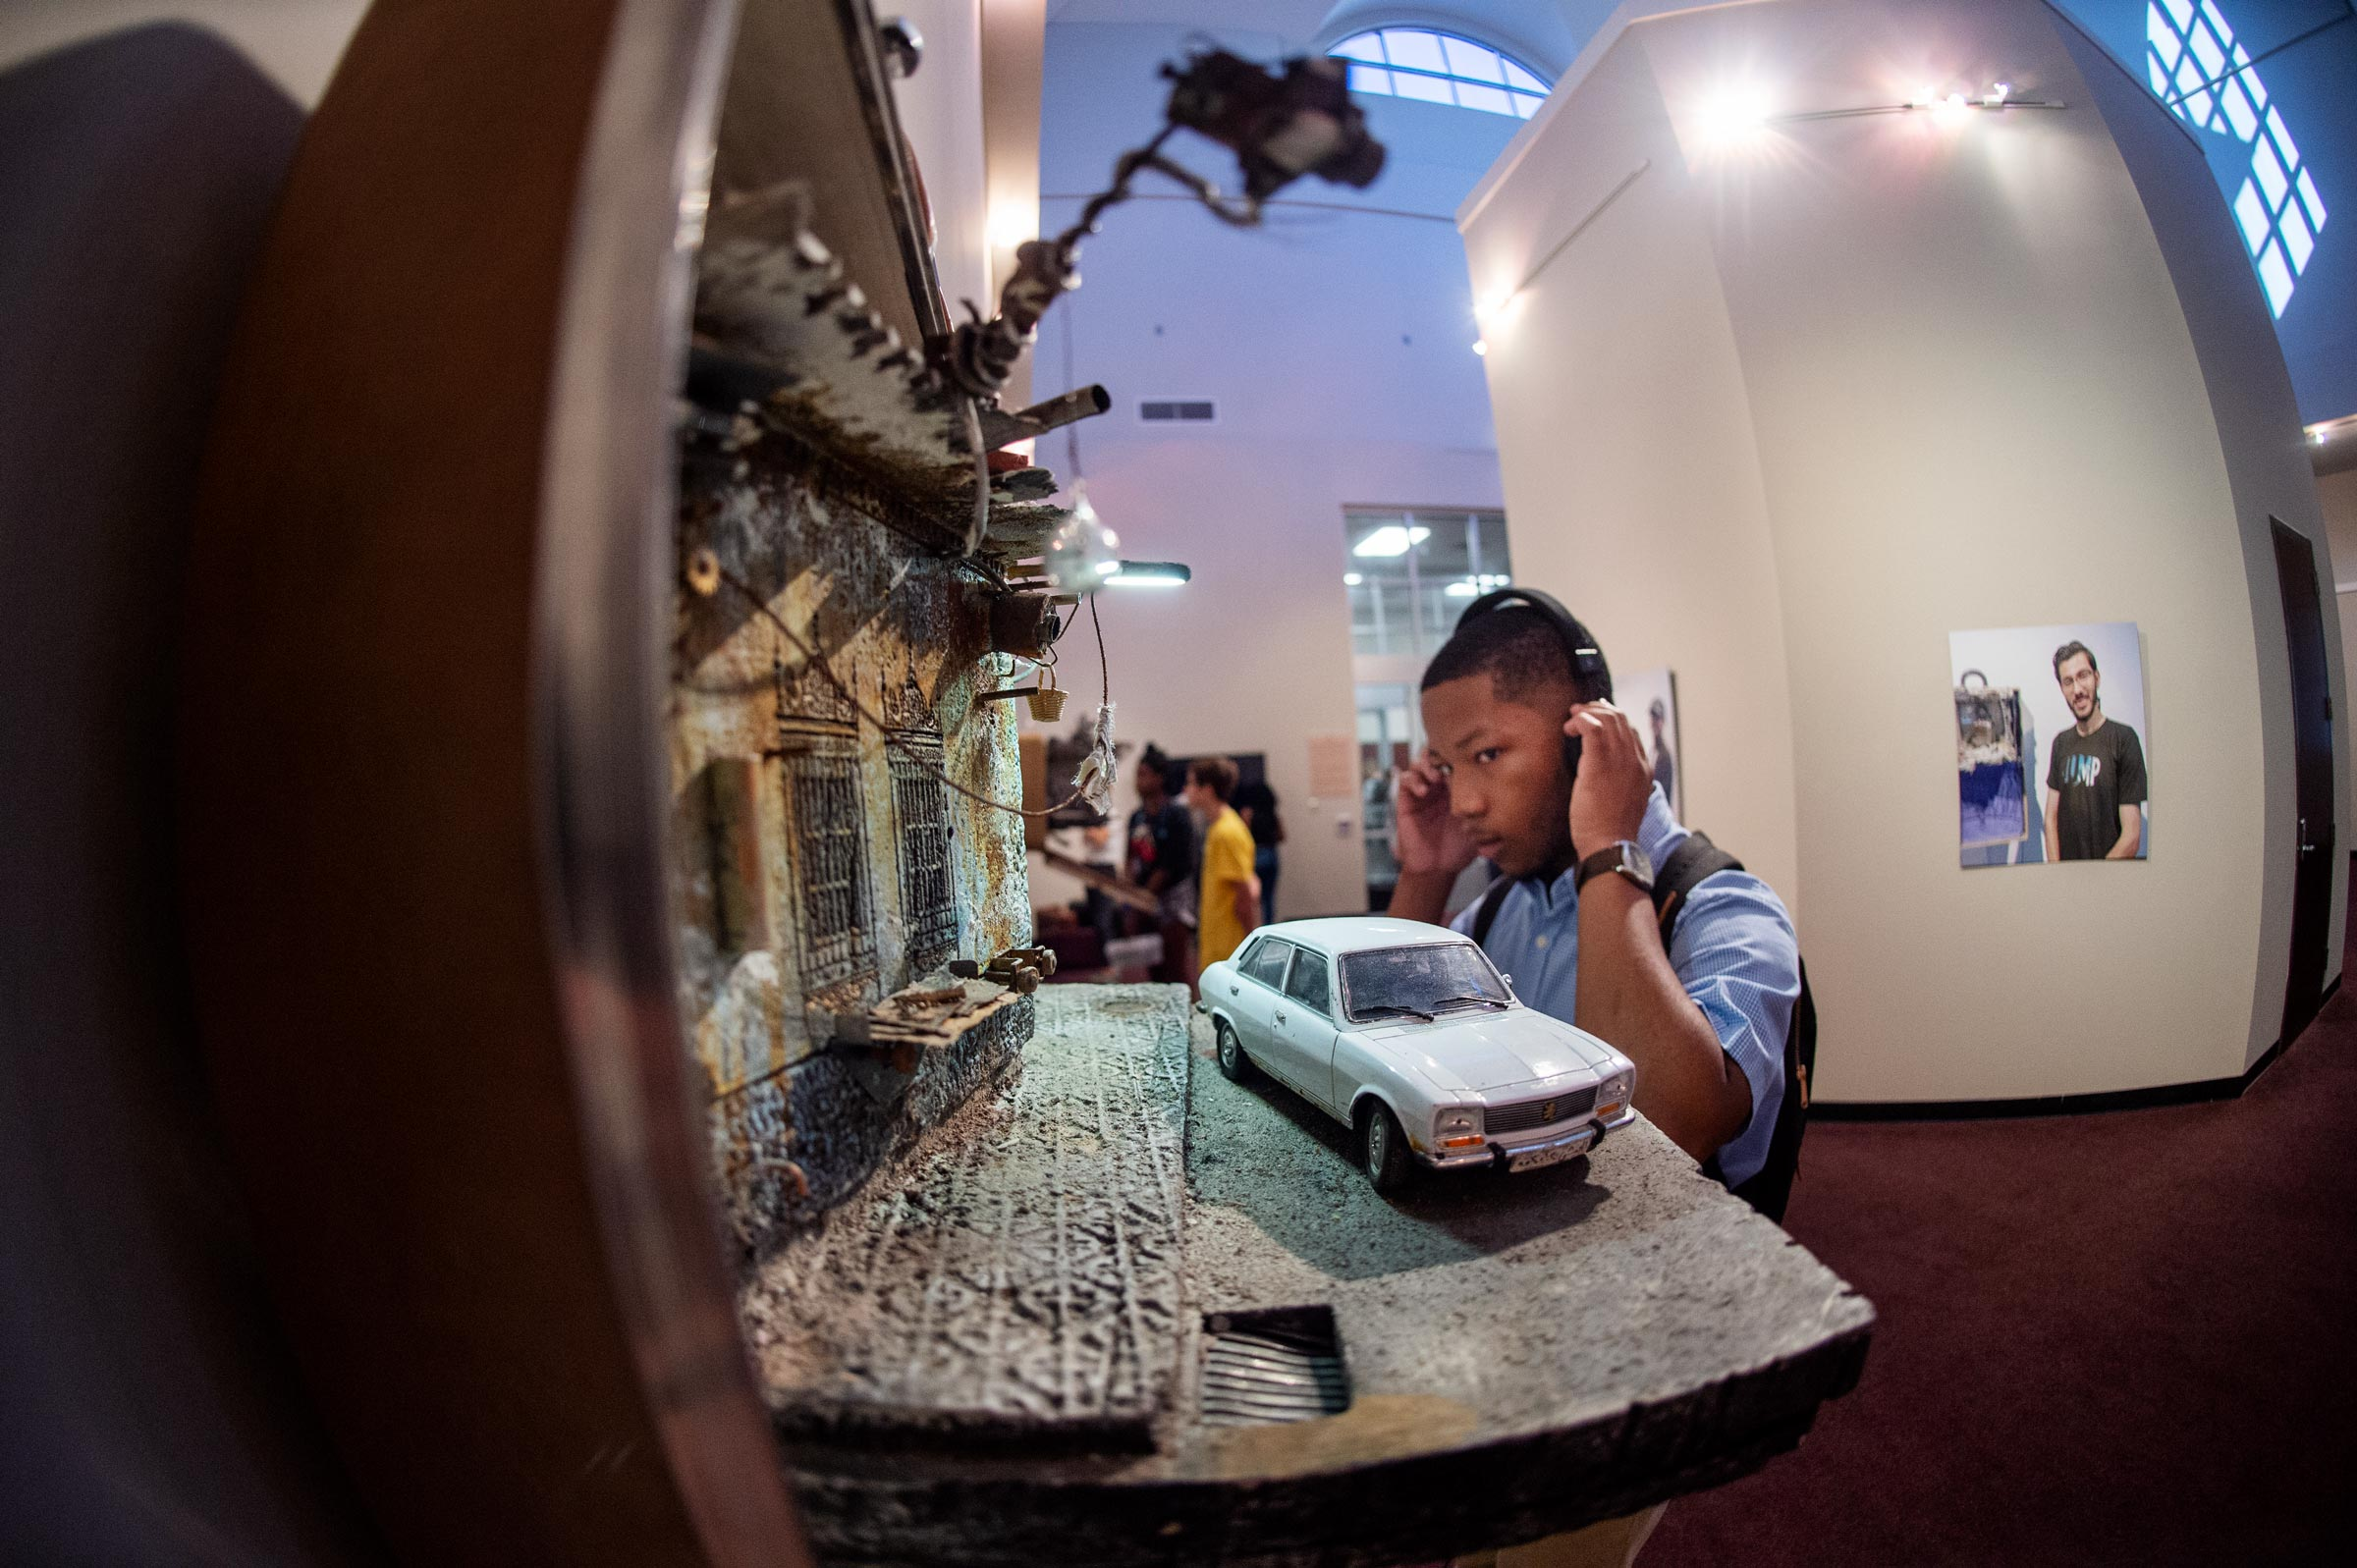 With the details of a suitcase diorama in the foreground, art major Christian Ivy listens to one of the audio clips accompanying the UNPACKED exhibition.